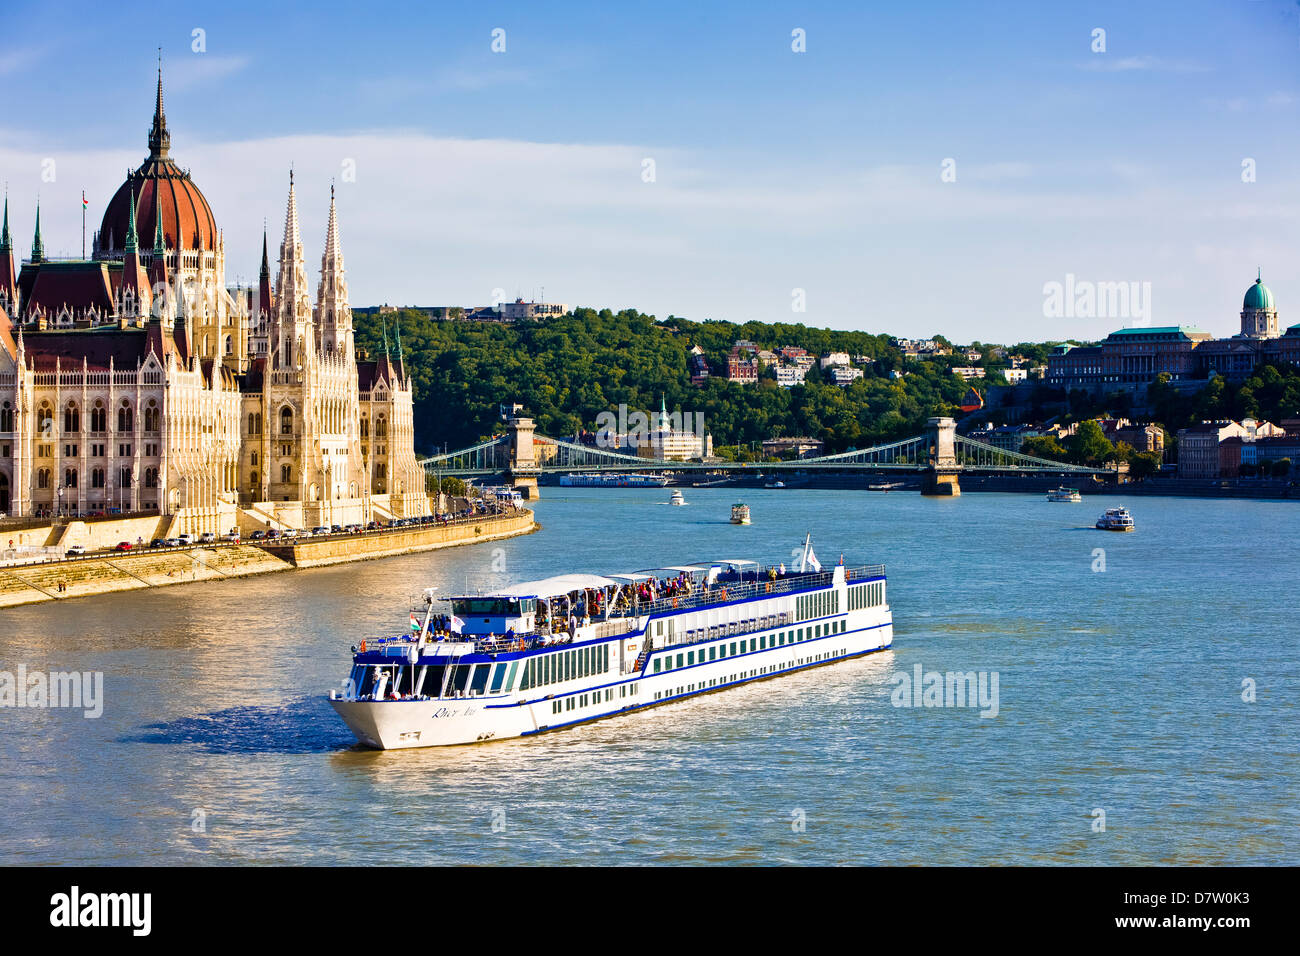 Cruise ship passing the Parliament on the Danube, Budapest, Hungary - Stock Image